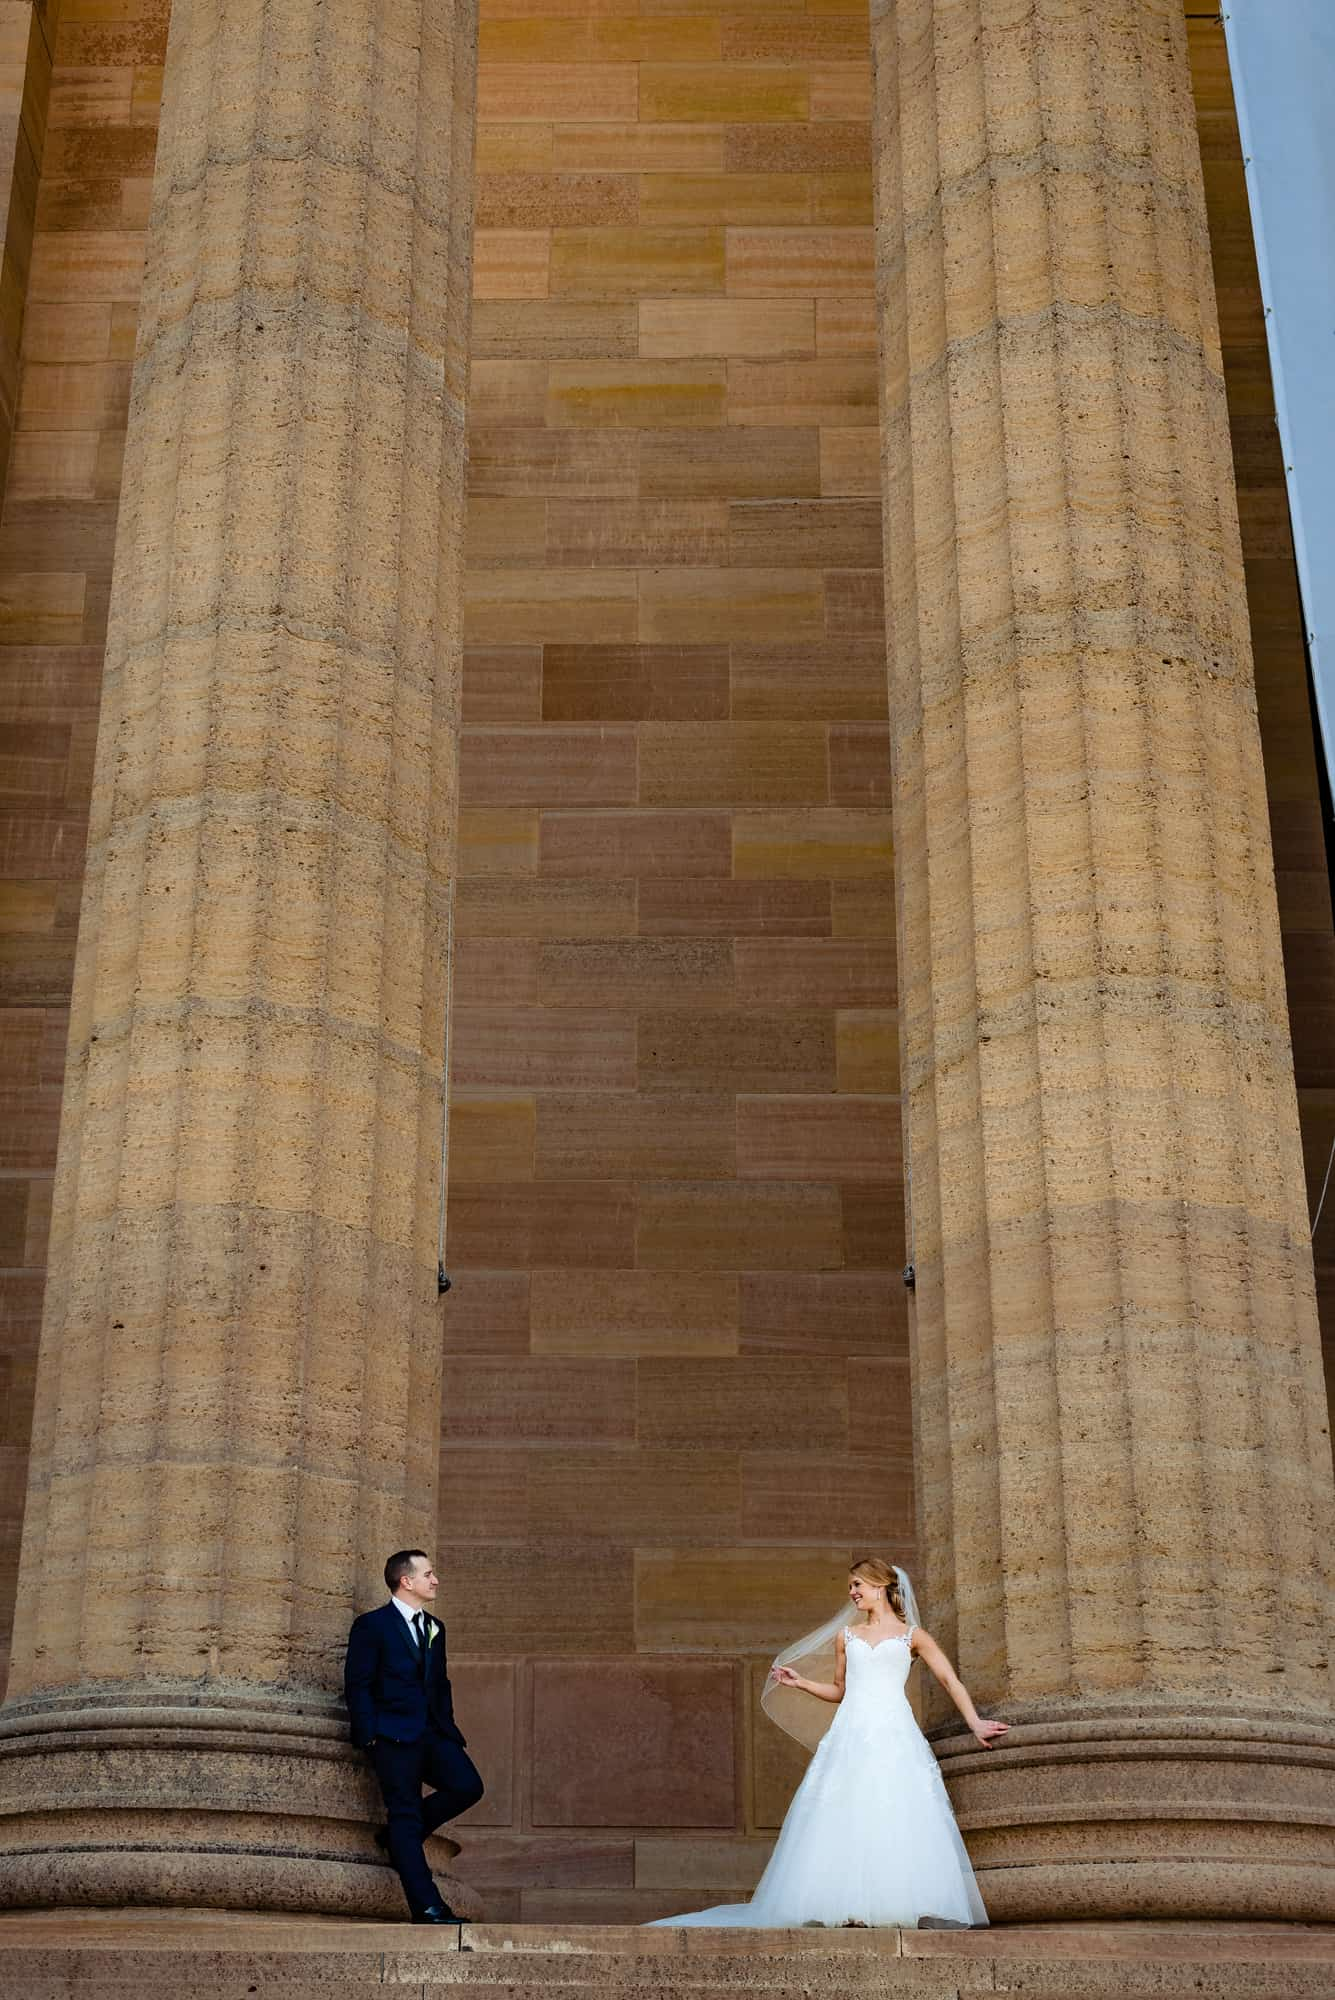 Bride and groom posing on the steps of the Philadelphia Museum of Art